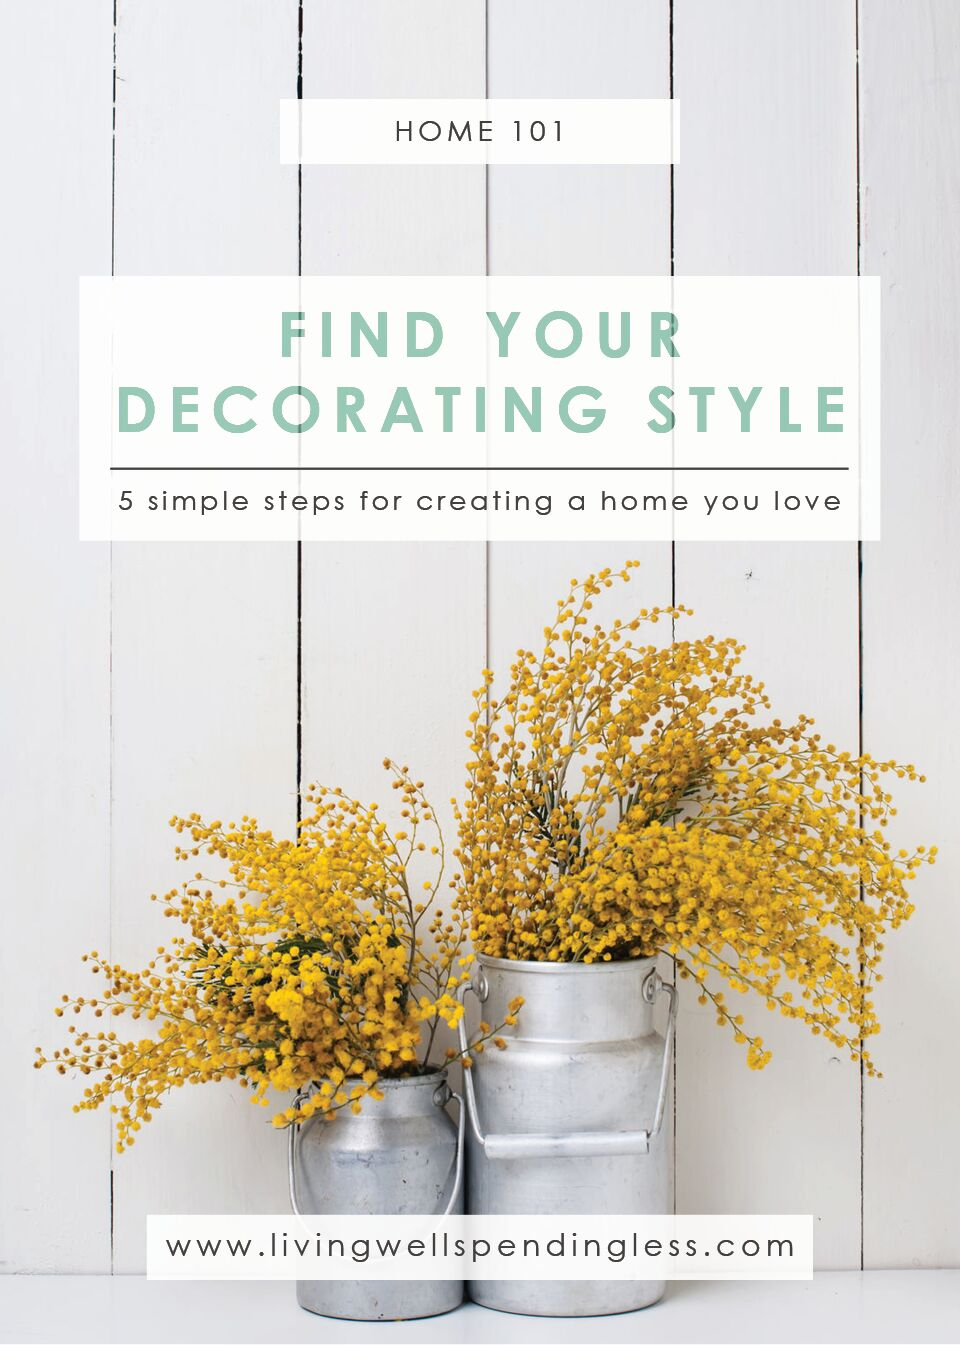 5 Steps For Finding Your Decorating Style | Home Decorating | DIY Home Decor